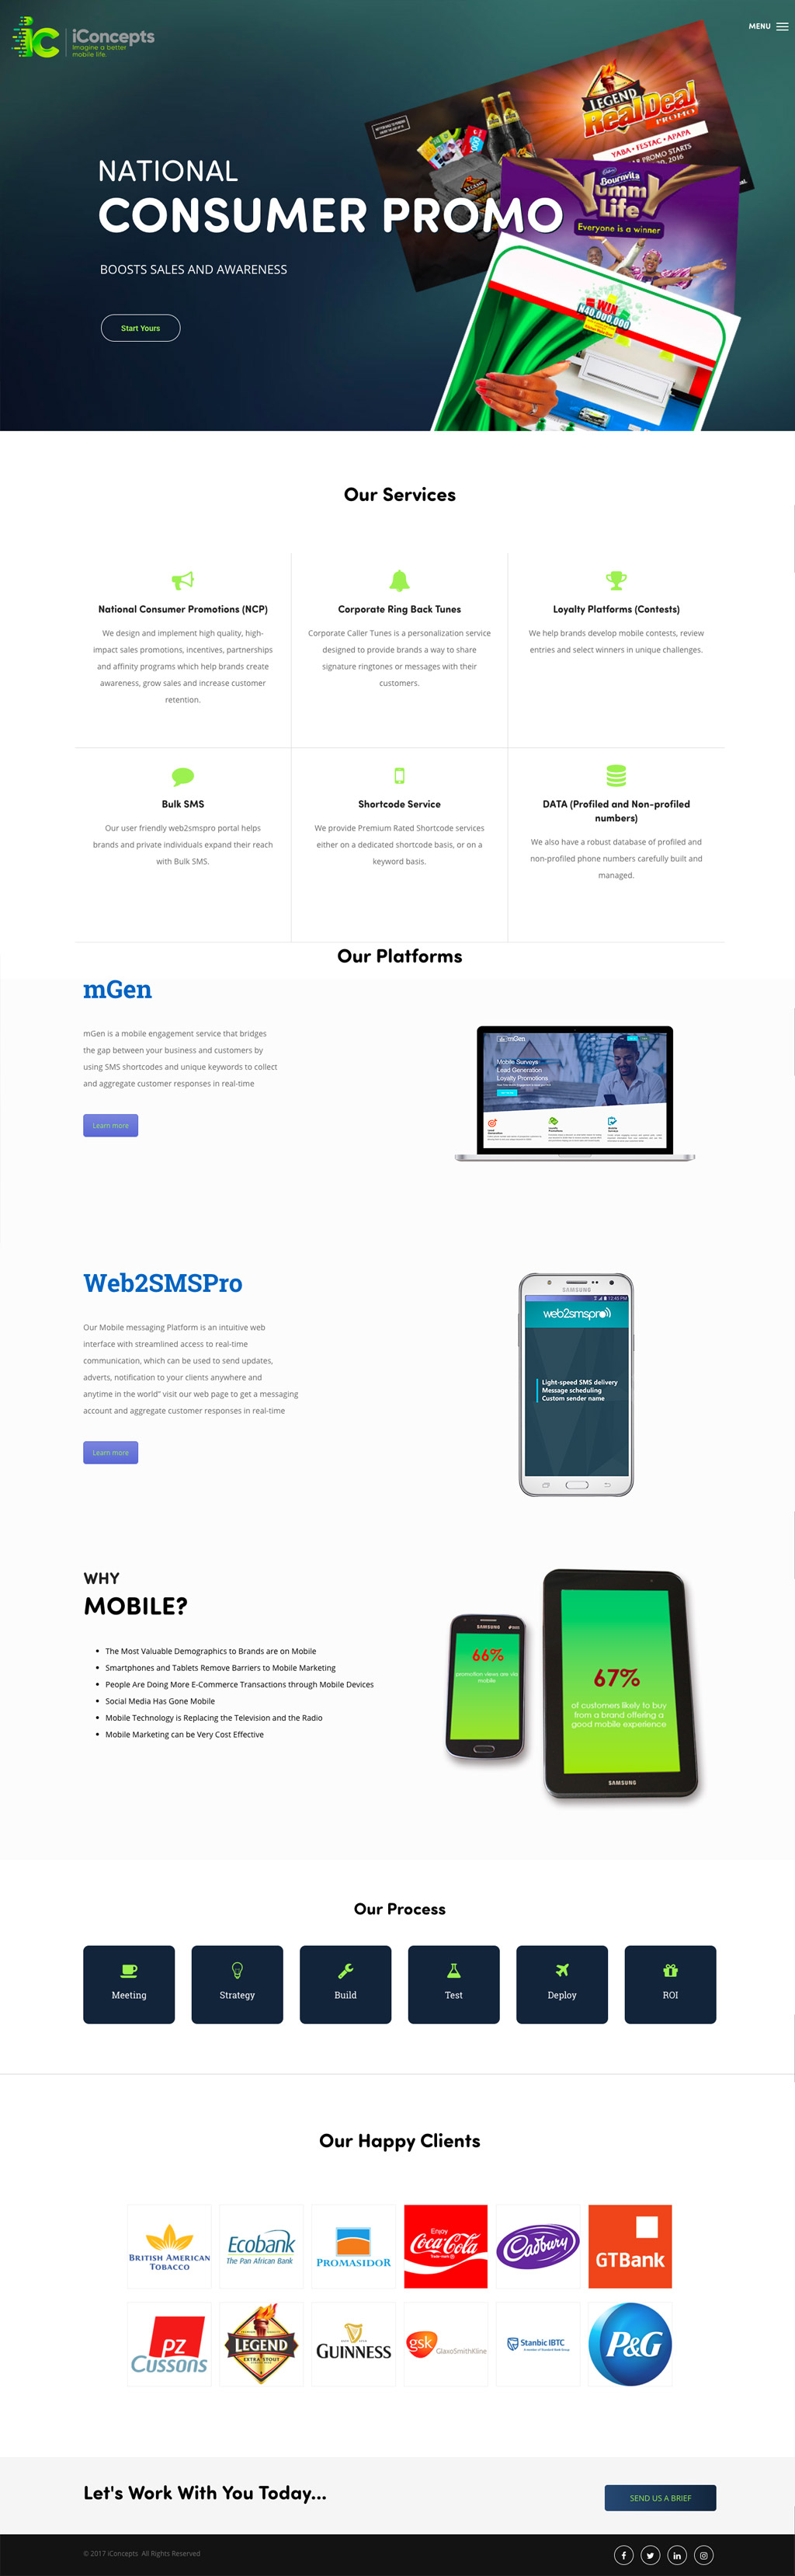 iConcepts website design 2